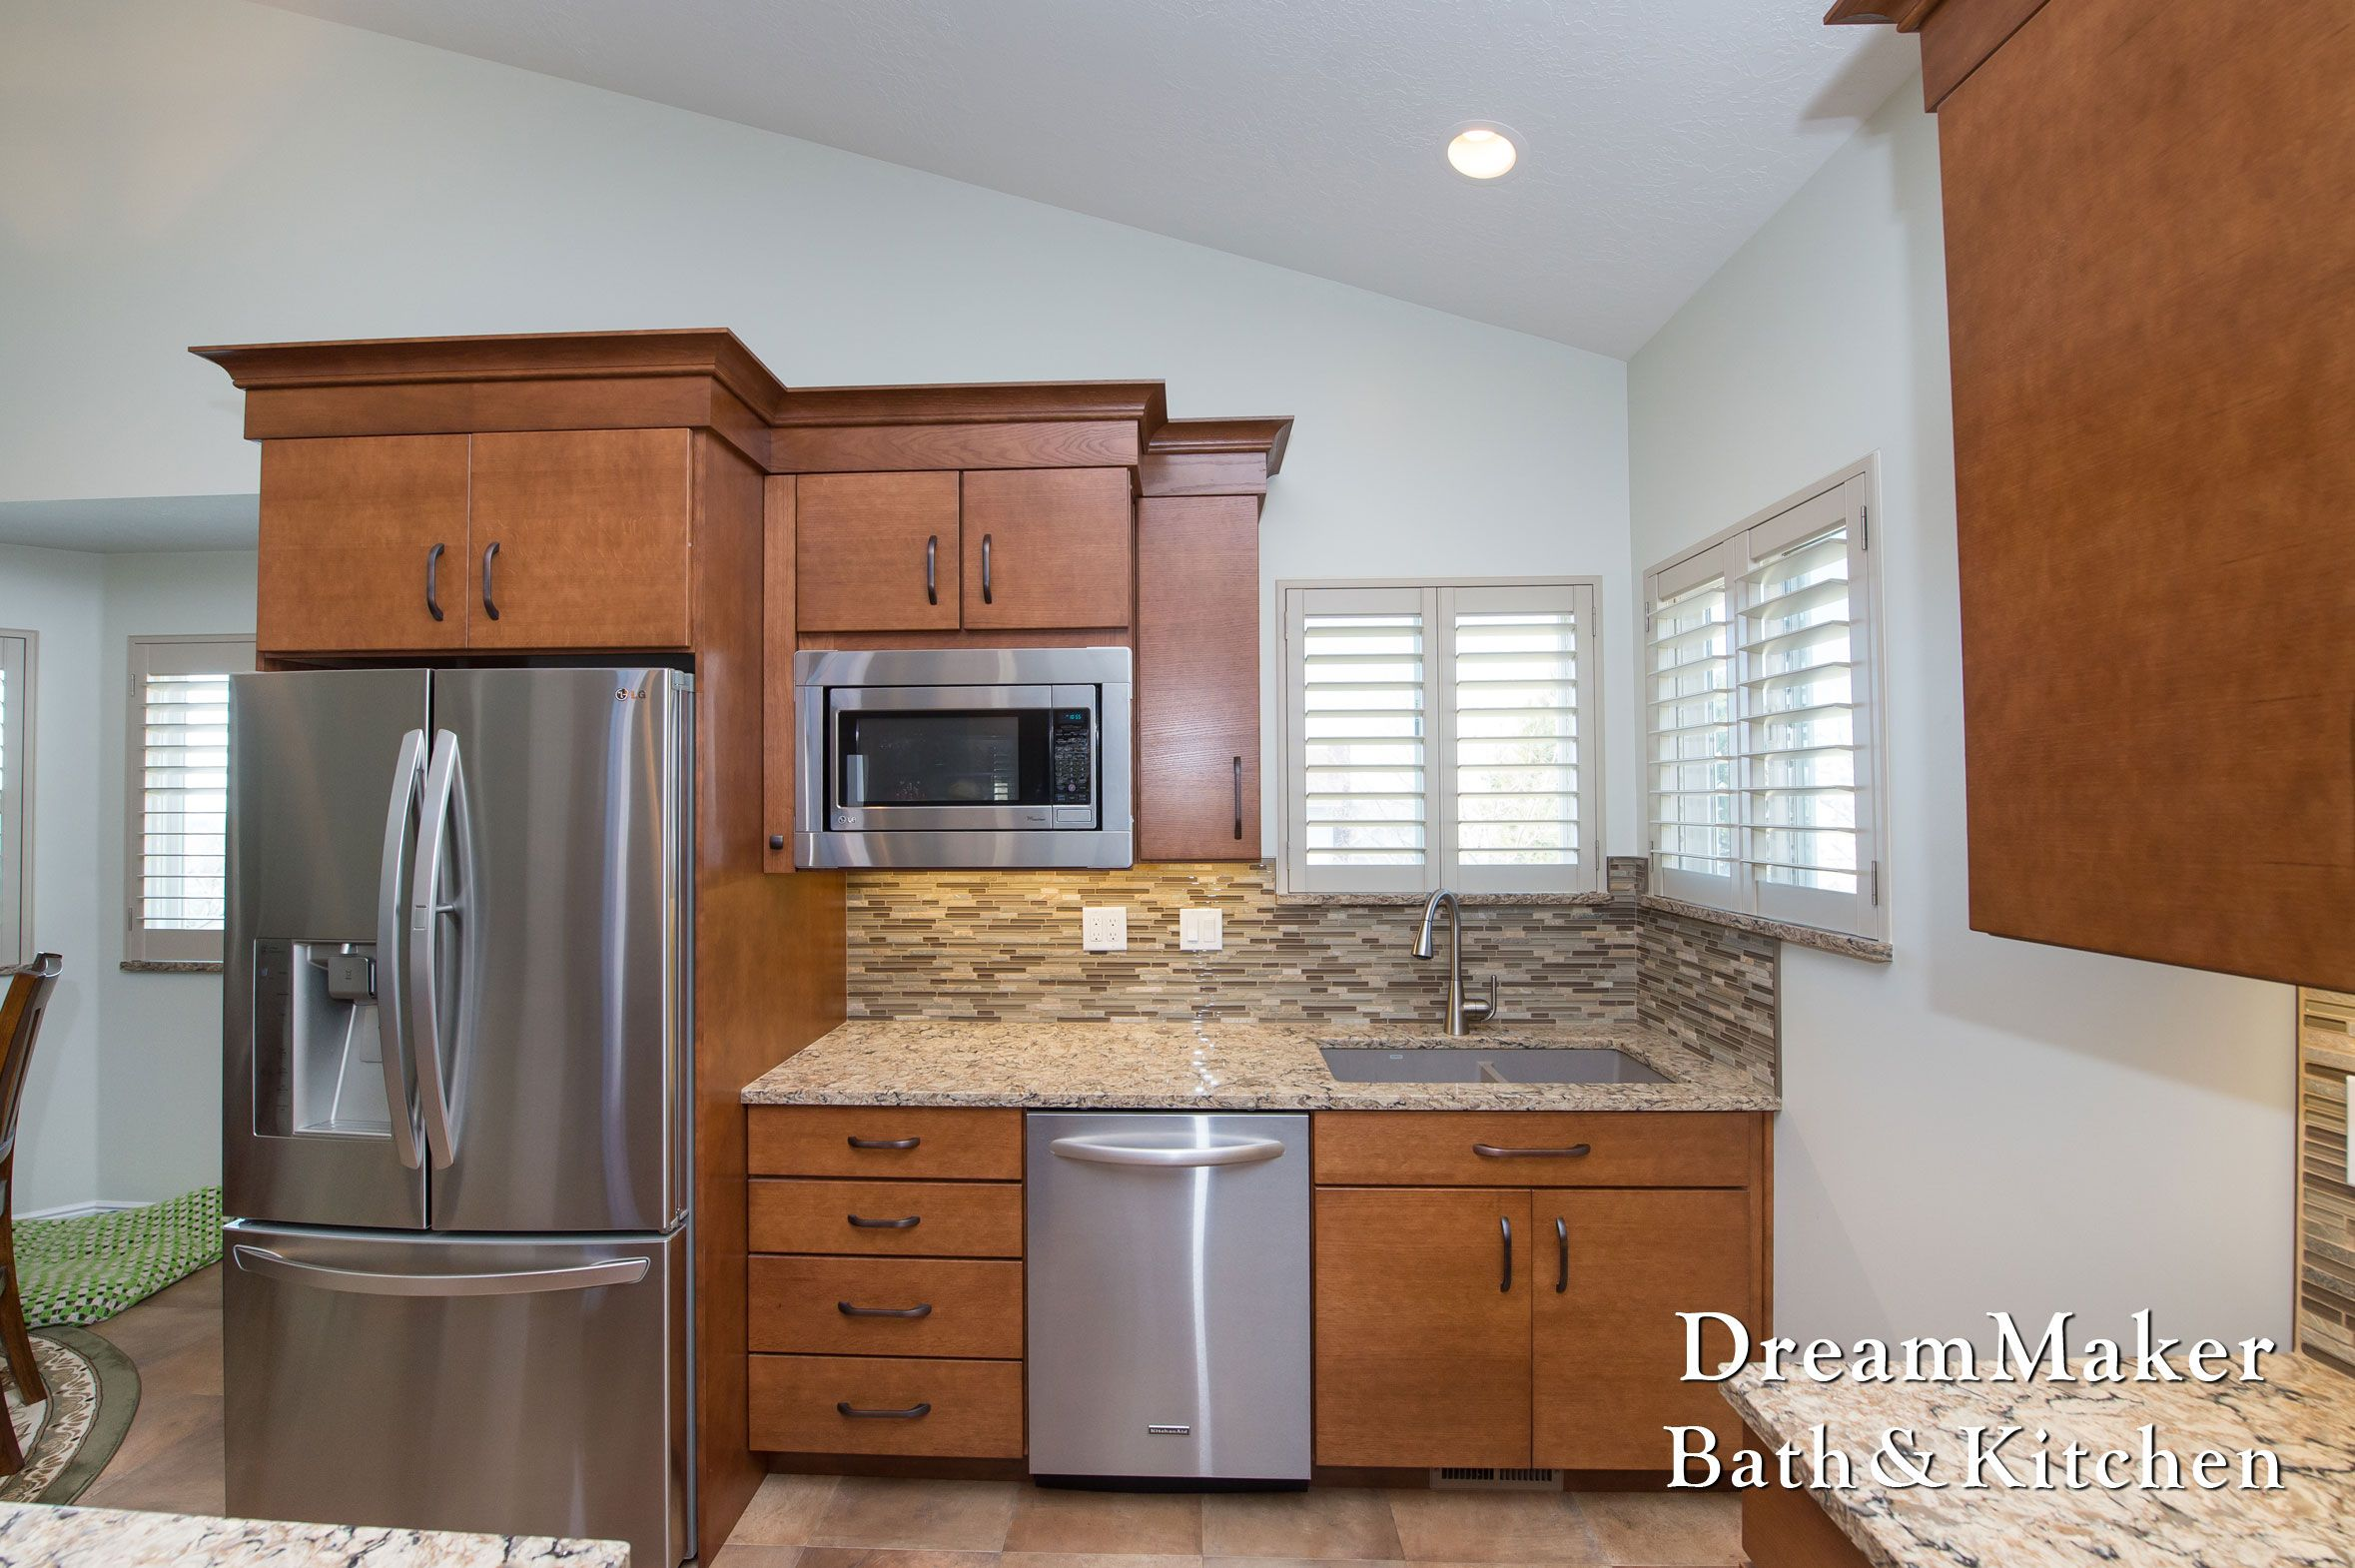 chrome appliances in this kitchen remodel andrea hanks photography kitchen remodel kitchen on kitchen remodel appliances id=48606